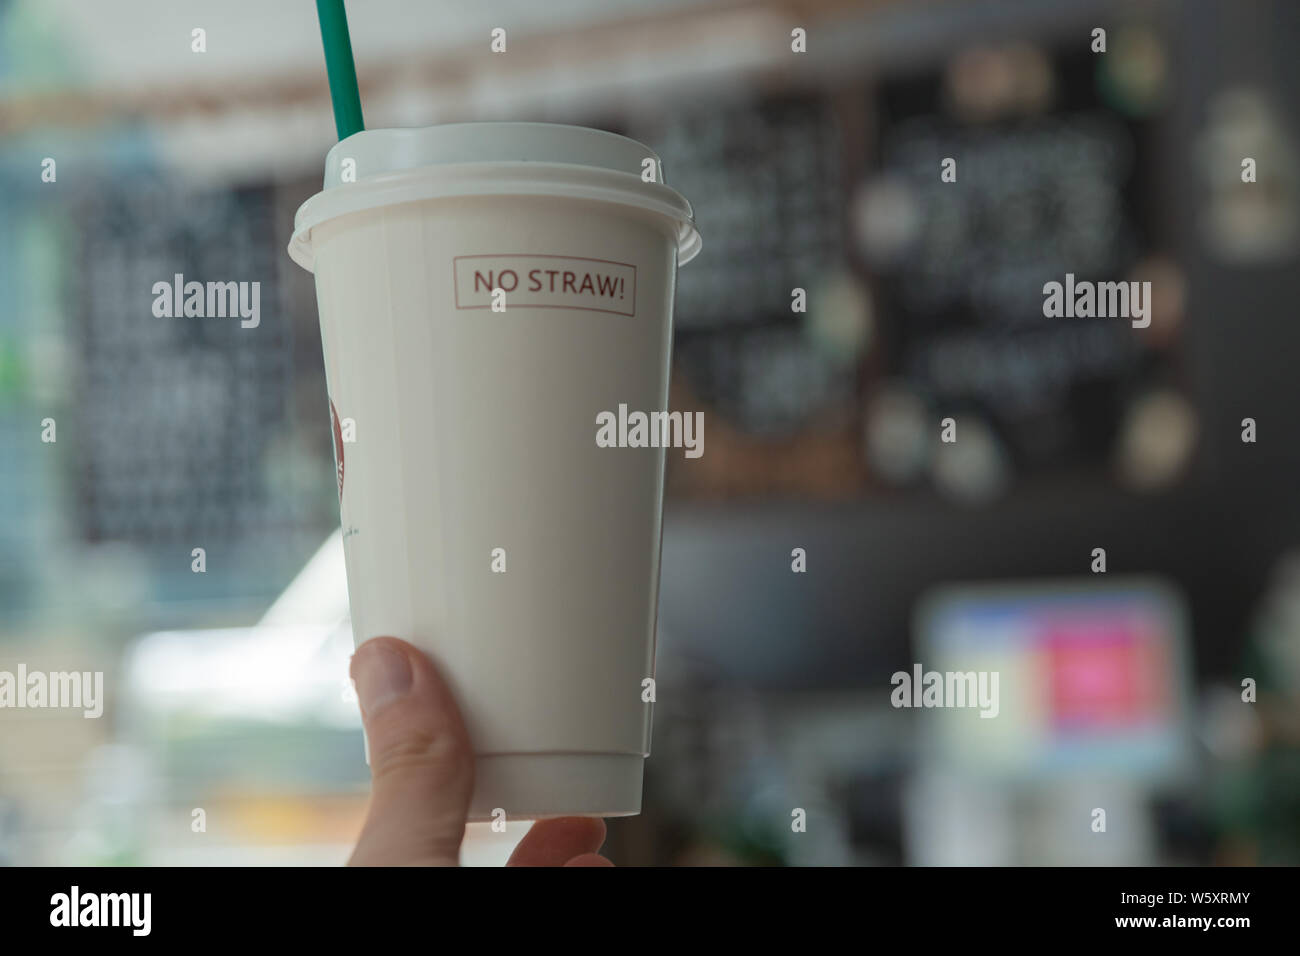 Summer Interior In The Coffee Shop Blurred Coffee Shop Background Coffee Cup In Hand Paper Drink Cups Paper Cups Yellow Straw Stock Photo Alamy